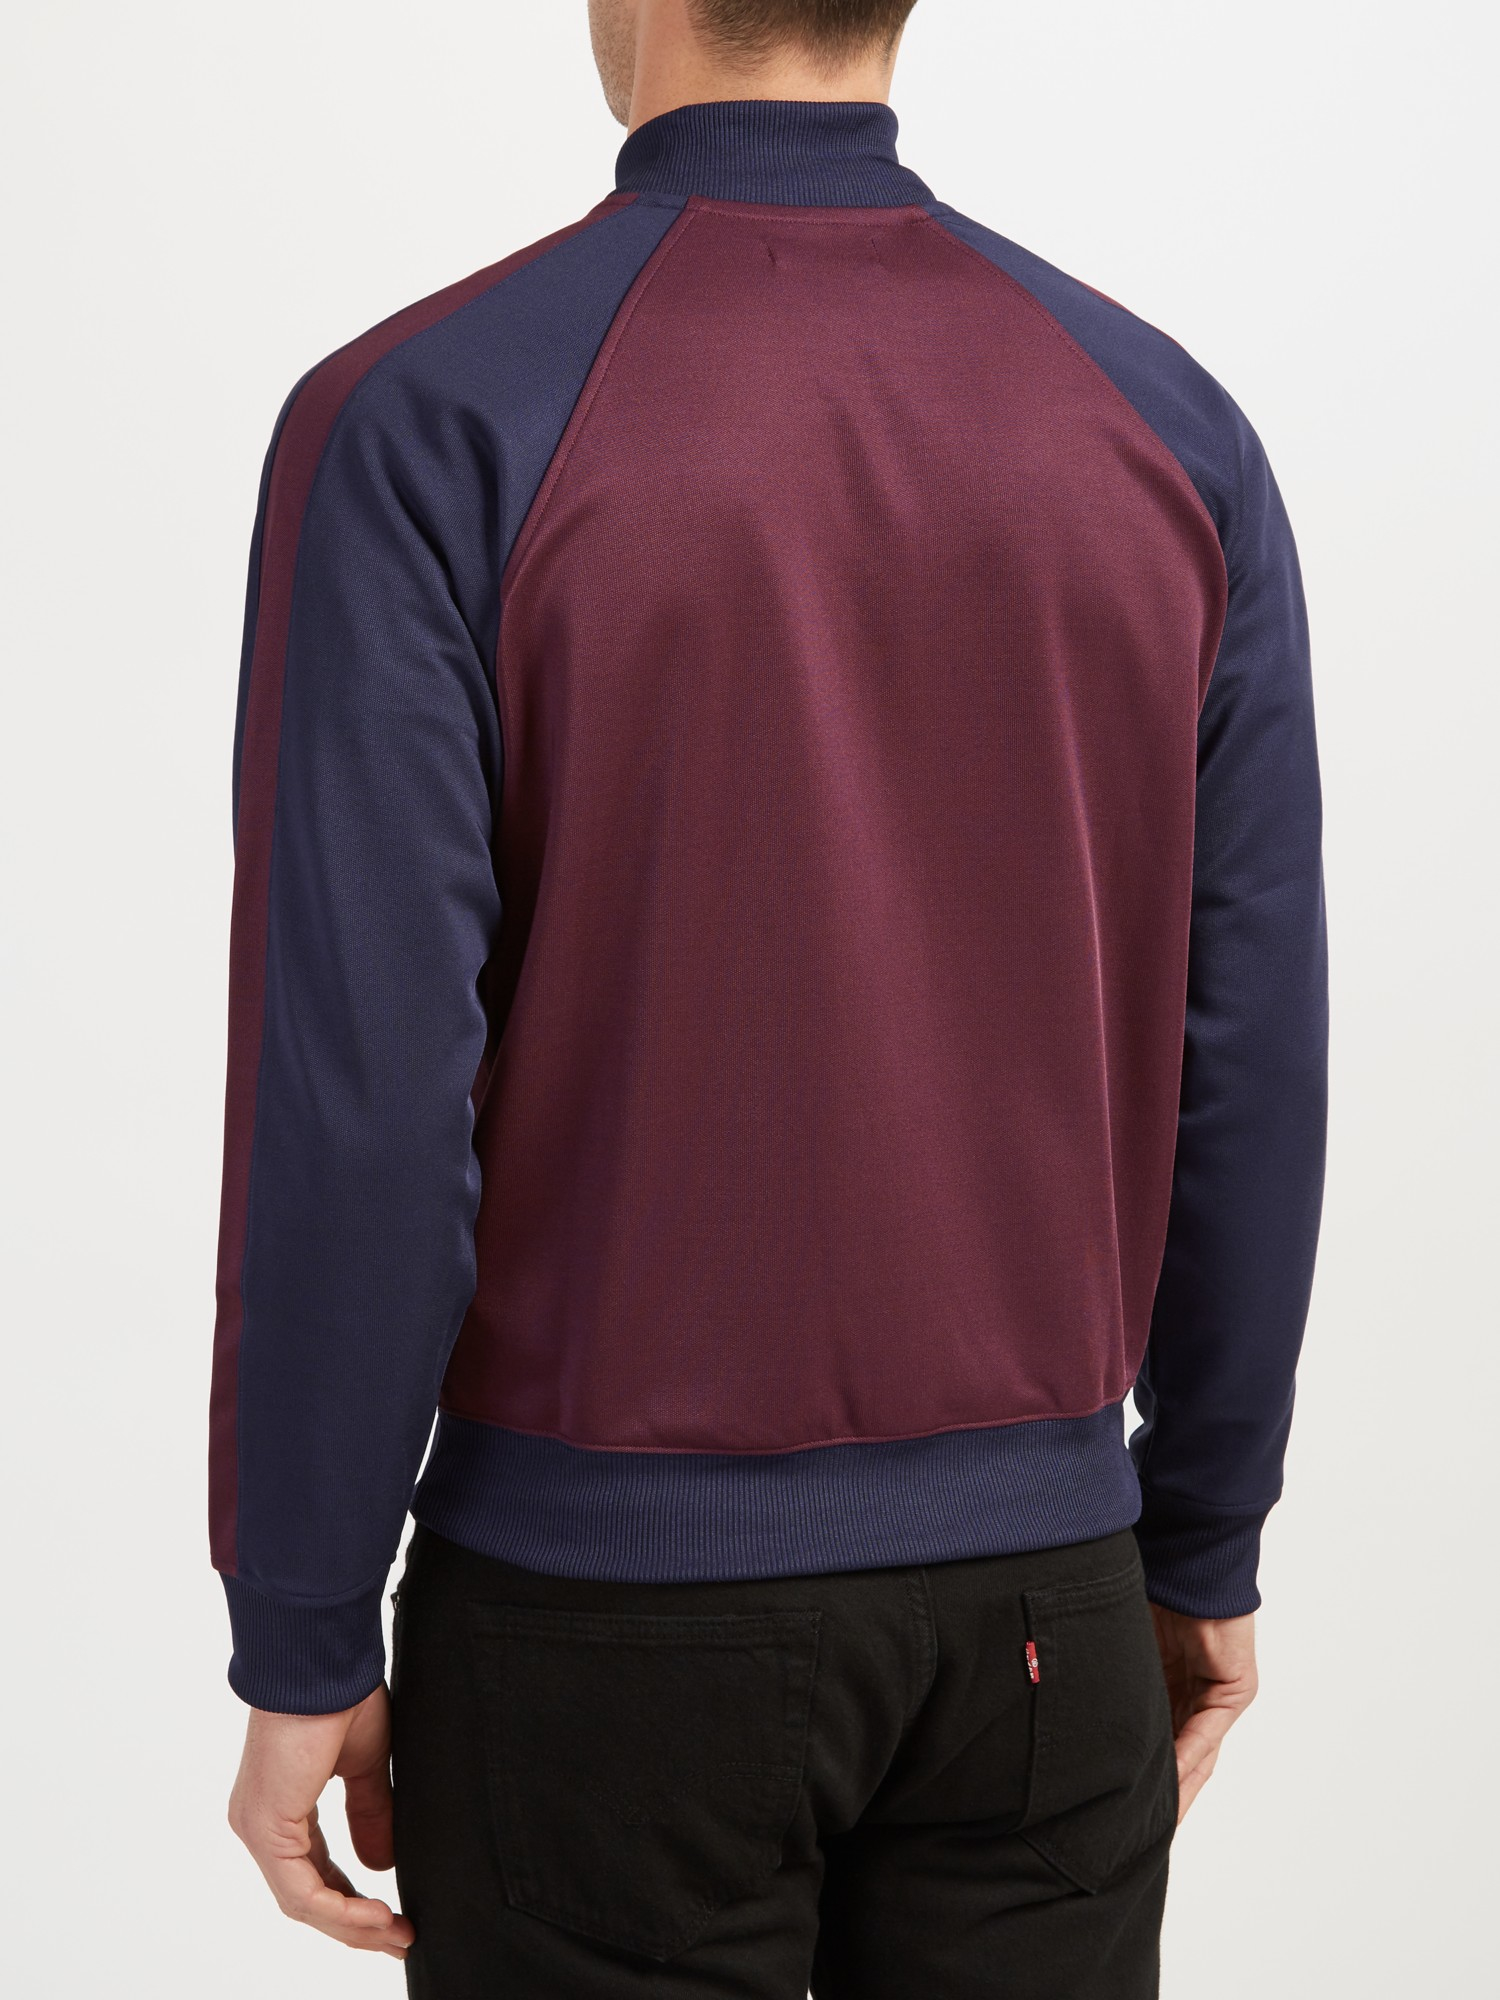 e6a2d9ed9 Fred Perry Sports Authentic Bomber Track Jacket in Brown for Men - Lyst